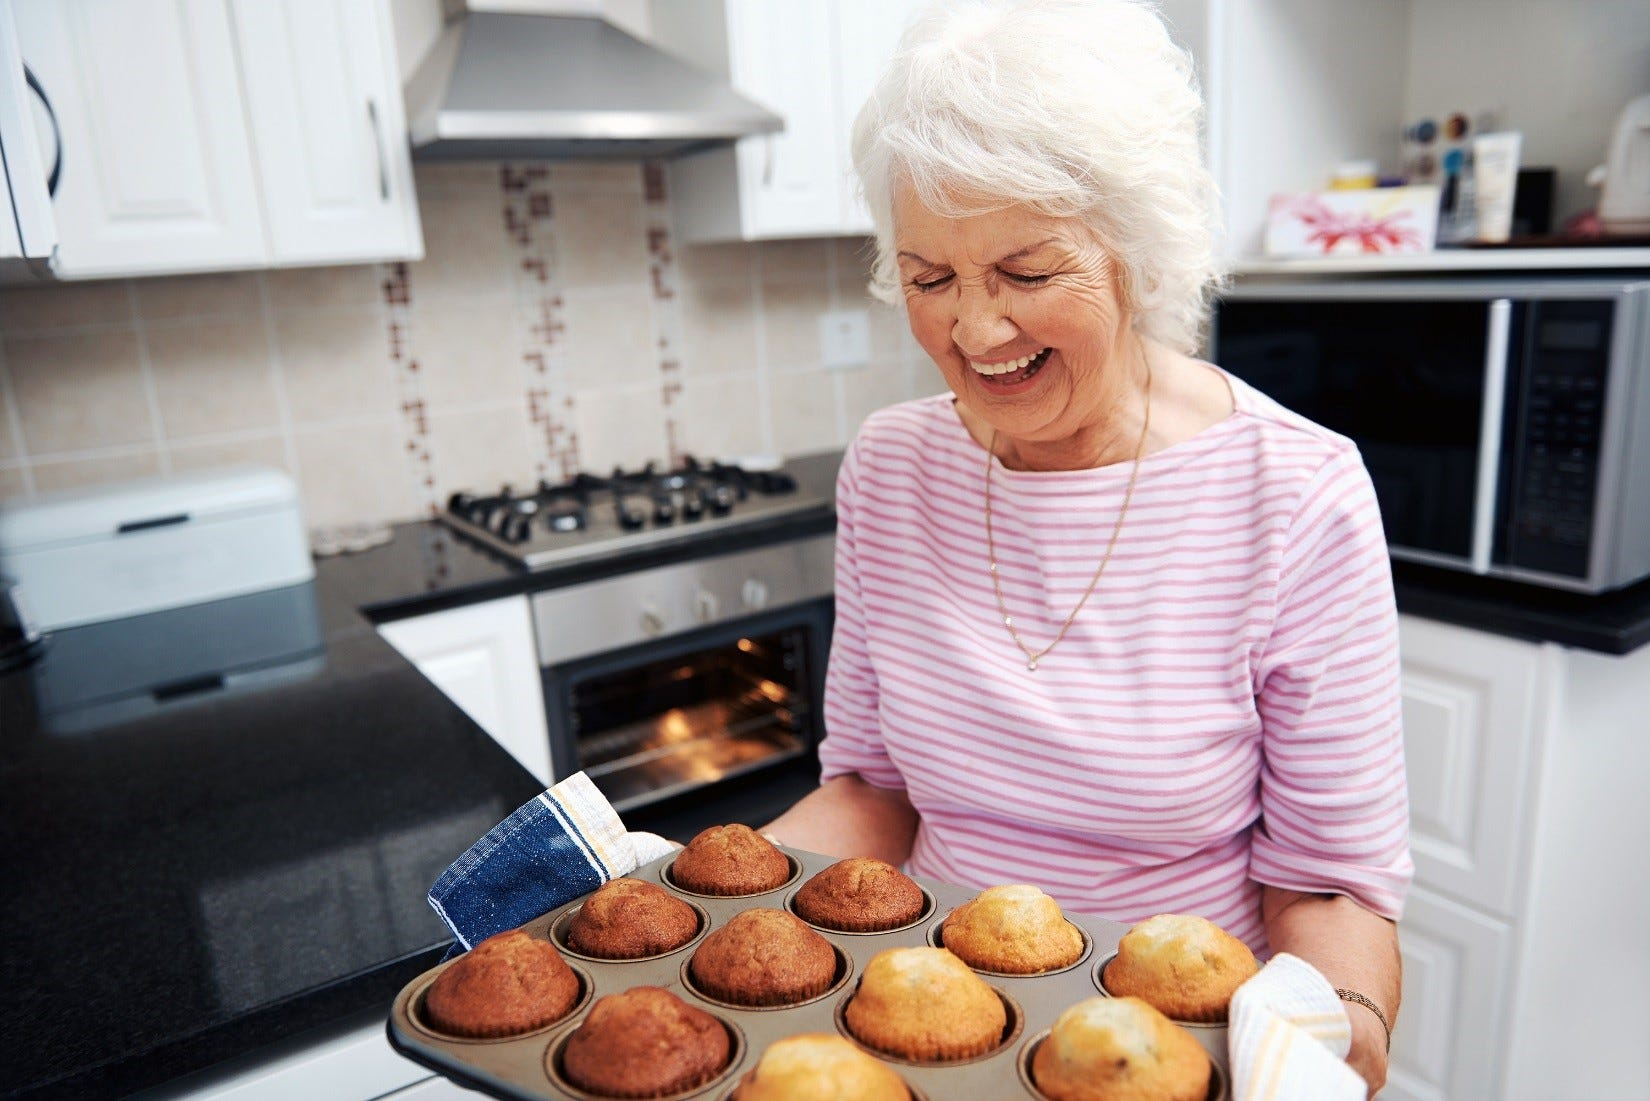 Baking is a popular indoor activity